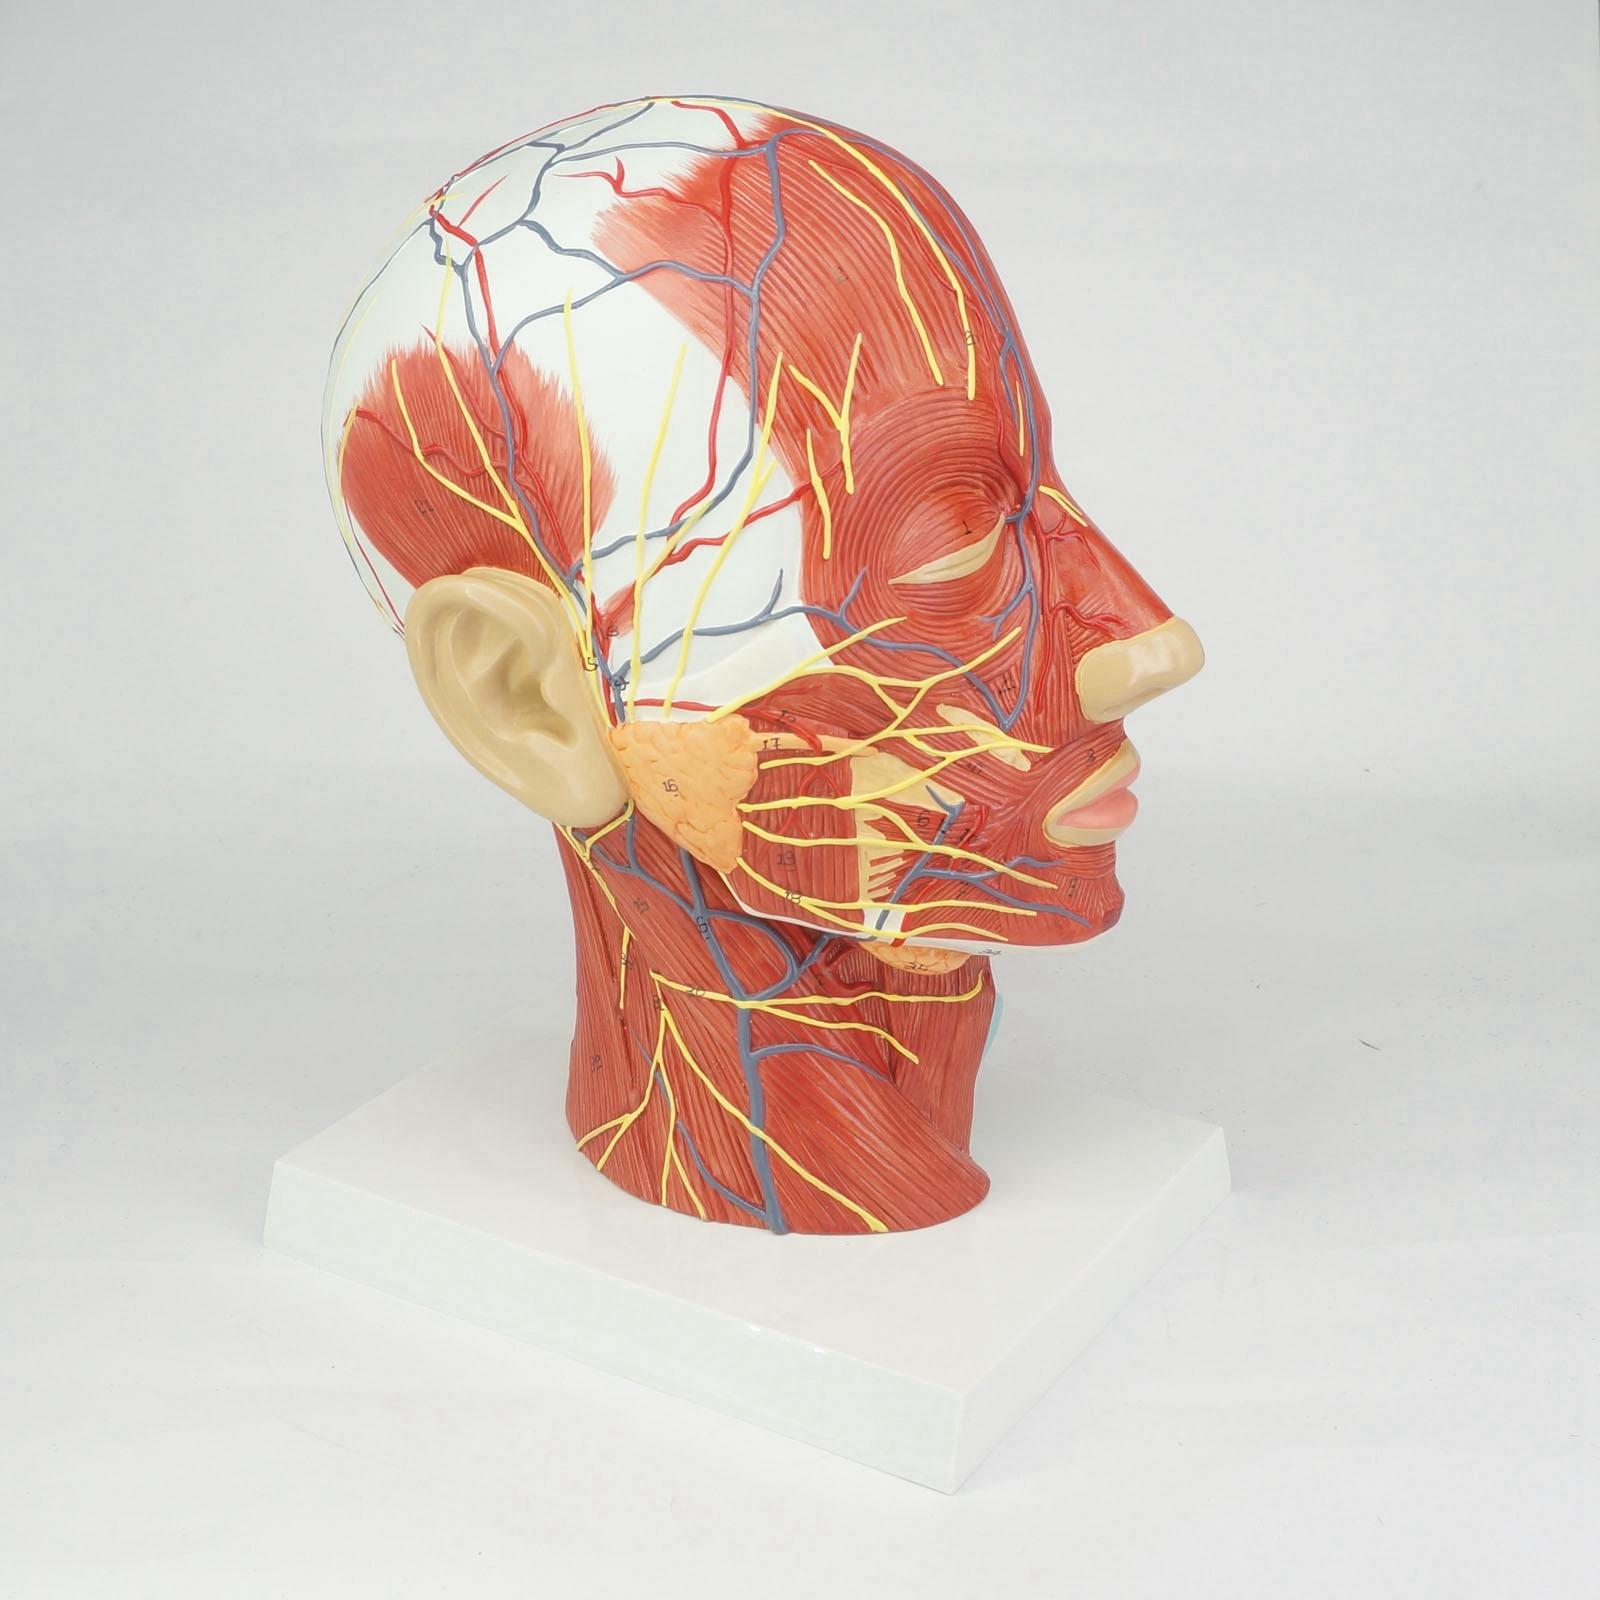 цена Median Section of Human Head & Neck Anatomical Model Medical Skeleton Anatomy Natural Life Size